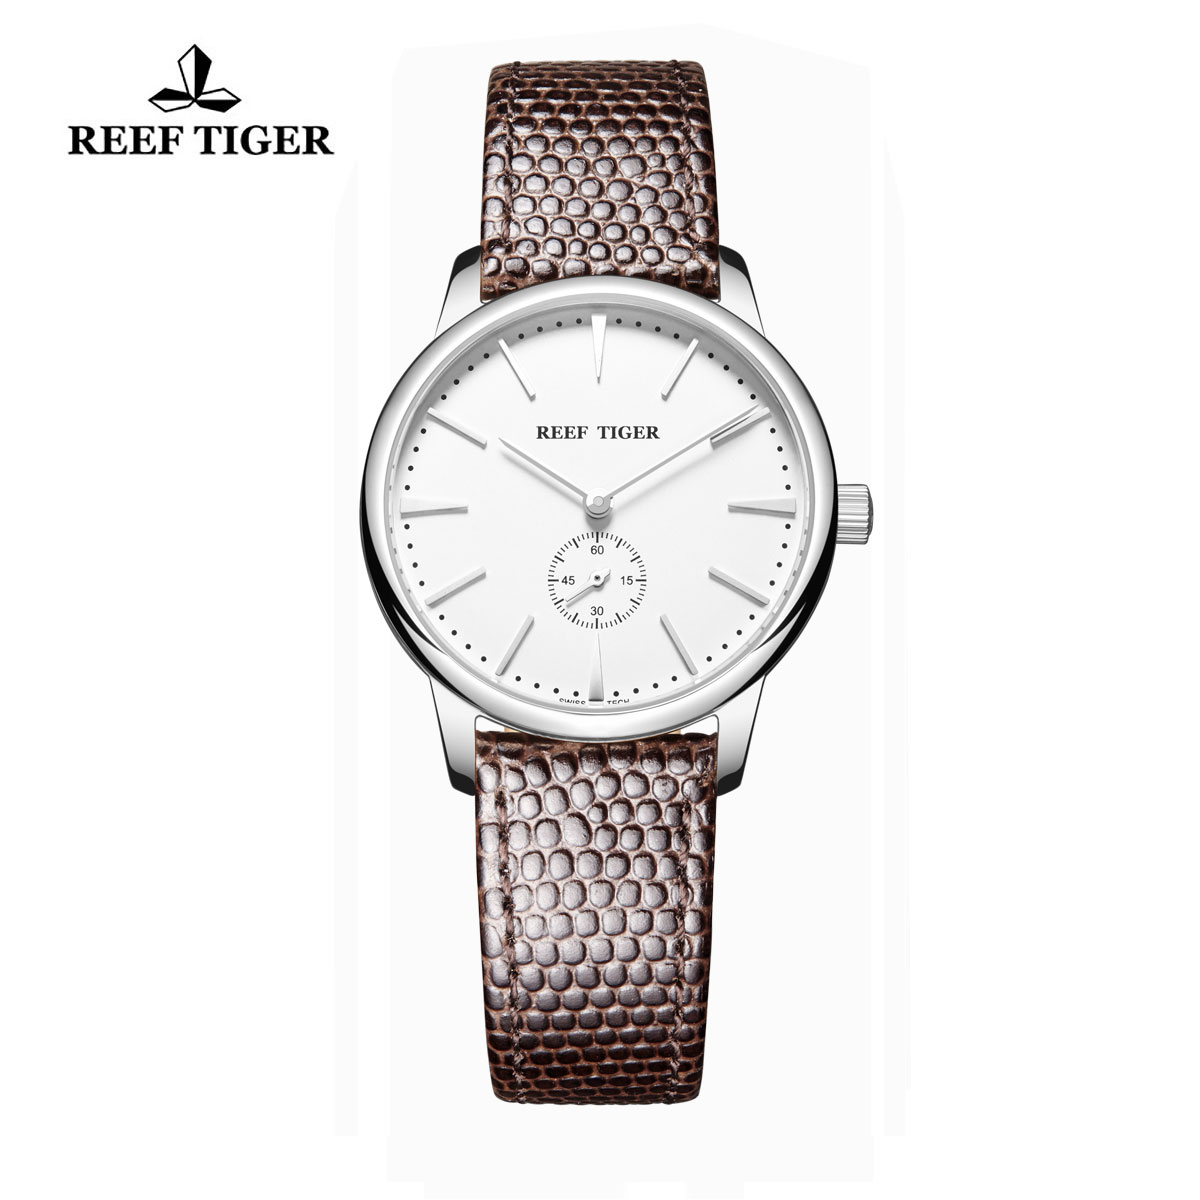 Reef Tiger Vintage Watch White Dial Stainless Steel Calfskin Leather RGA820-YWB-L